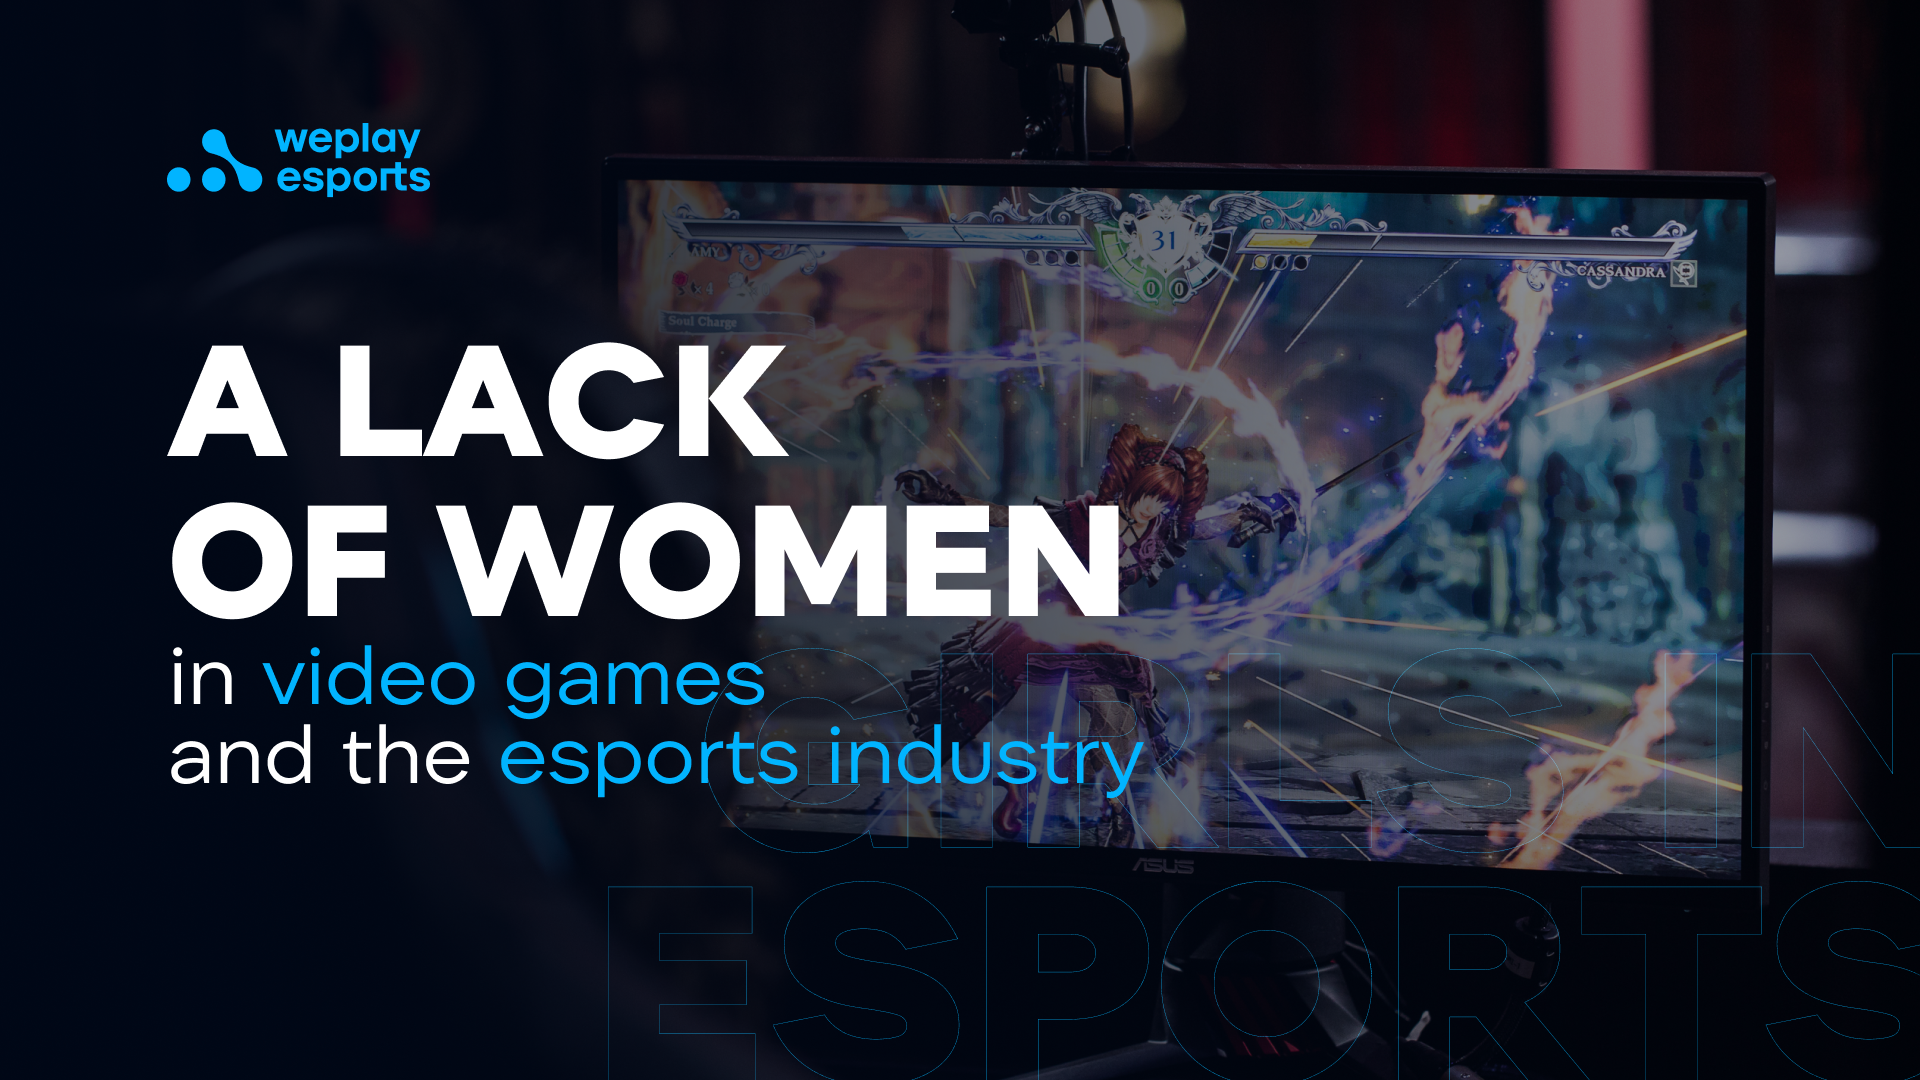 A lack of women in video games and the esports industry